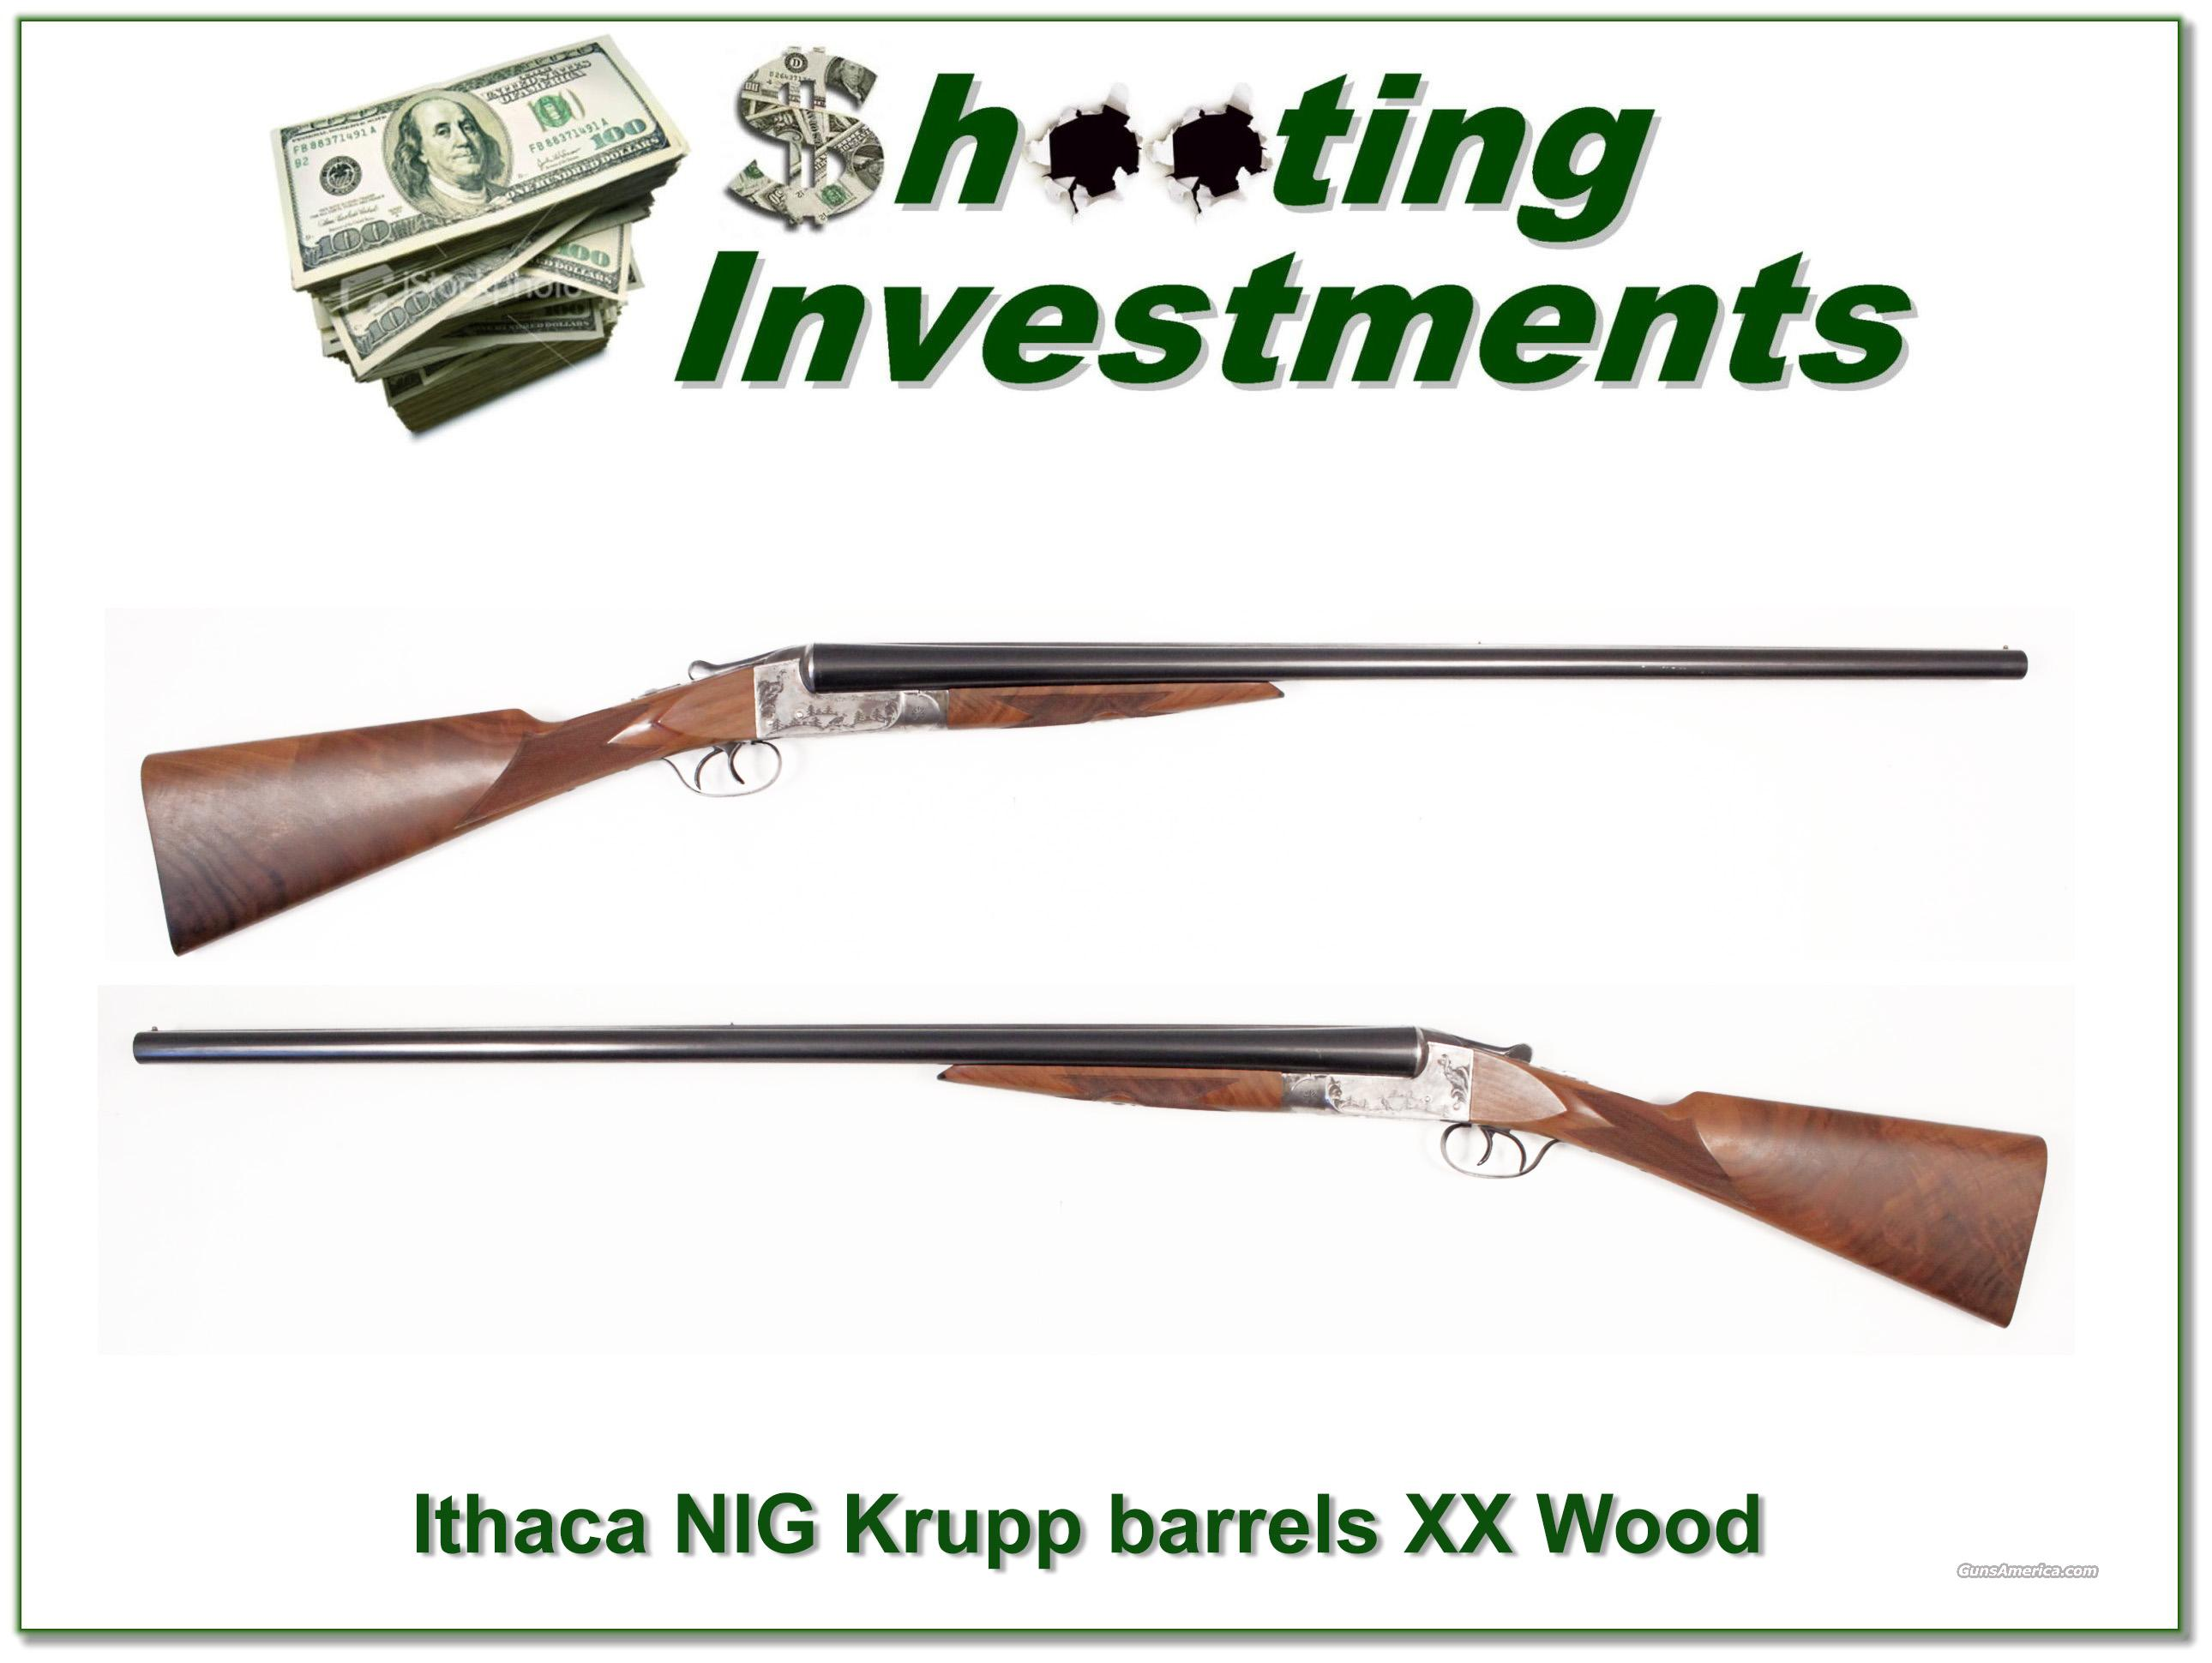 Ithaca NID 3E Exc Condition XX Wood Krupp barrels!  Guns > Shotguns > Ithaca Shotguns > SxS